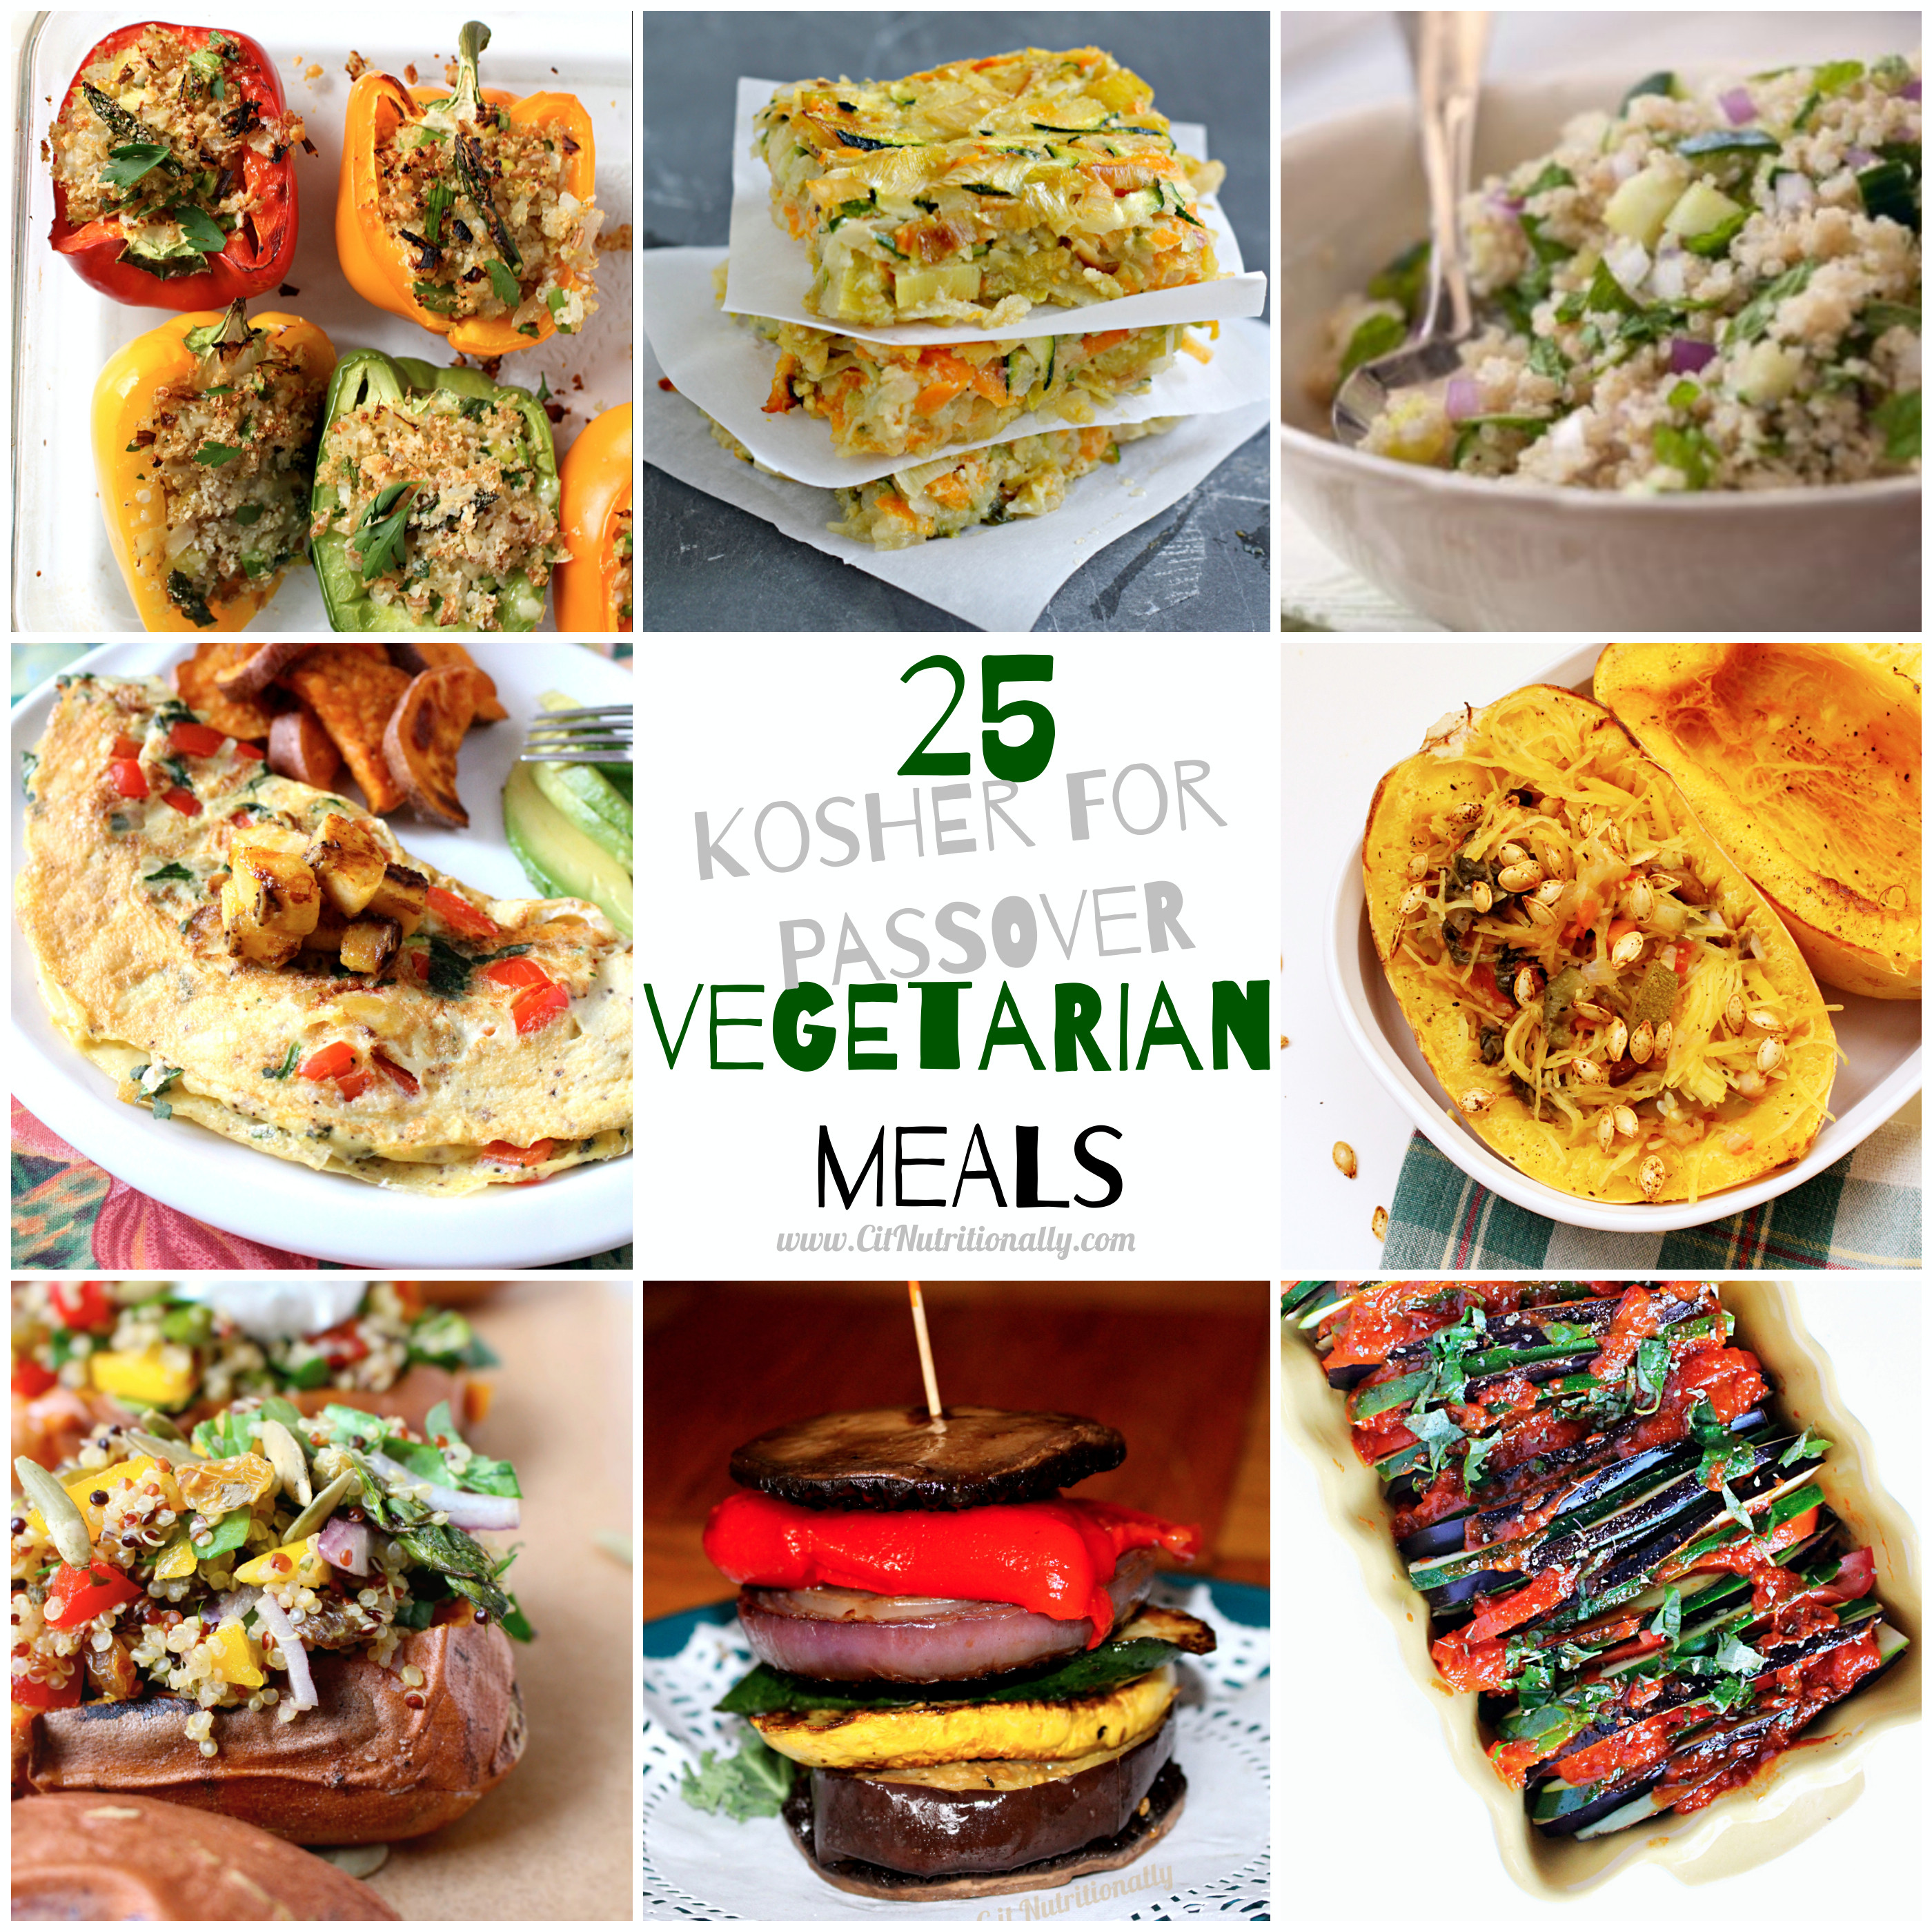 Passover Vegetarian Recipes  25 Ve arian Kosher for Passovers Meals C it Nutritionally